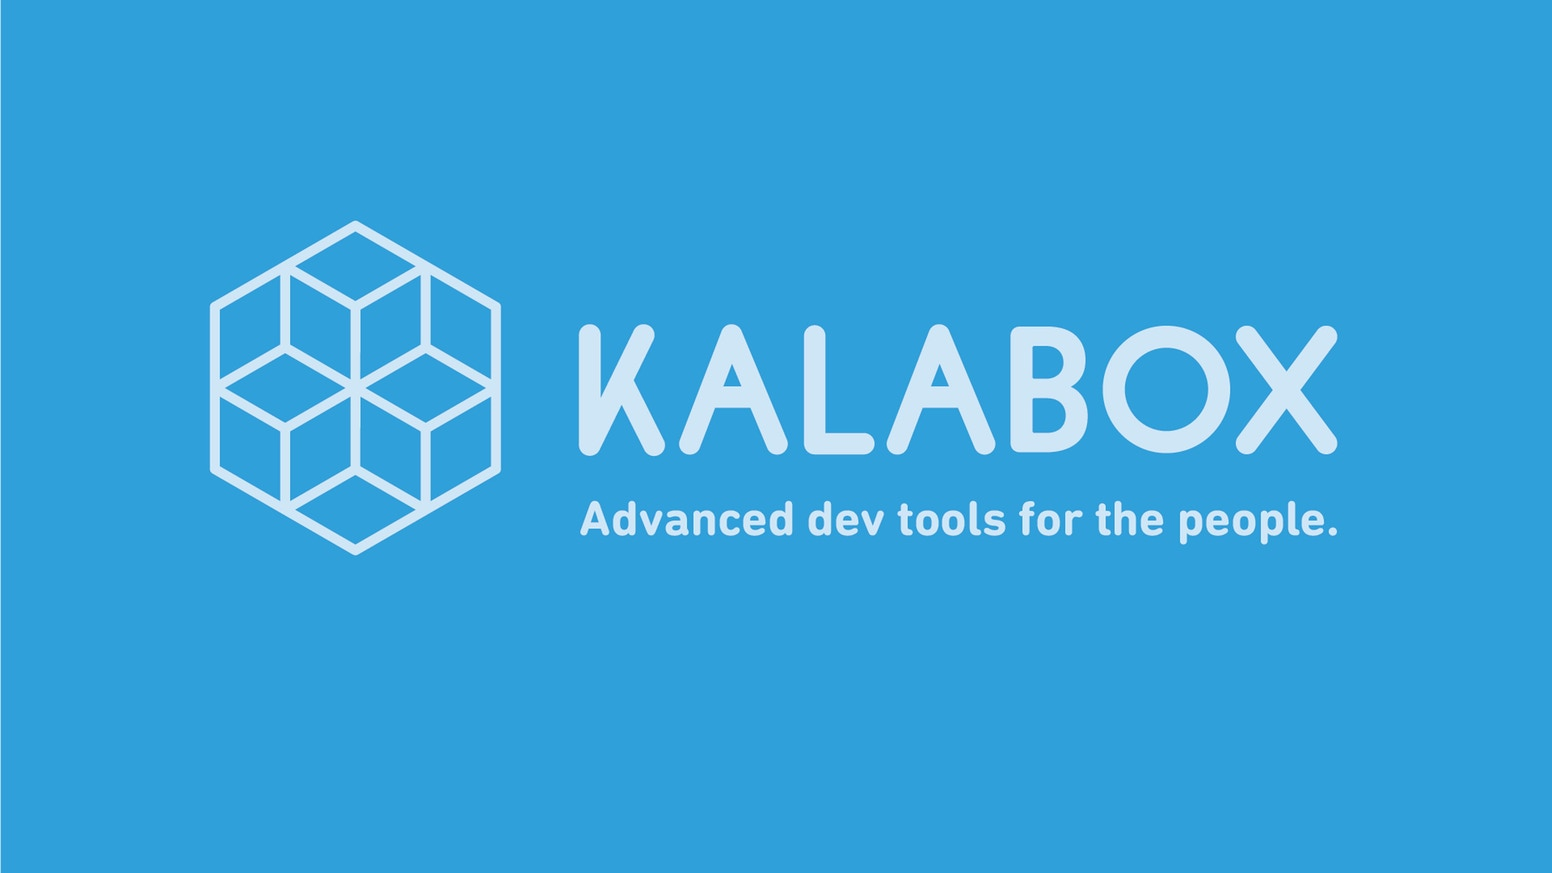 Advanced web tools now belong to the people, through Kalabox, an integrated workflow solution for Drupal developers. http://www.kalabox.io